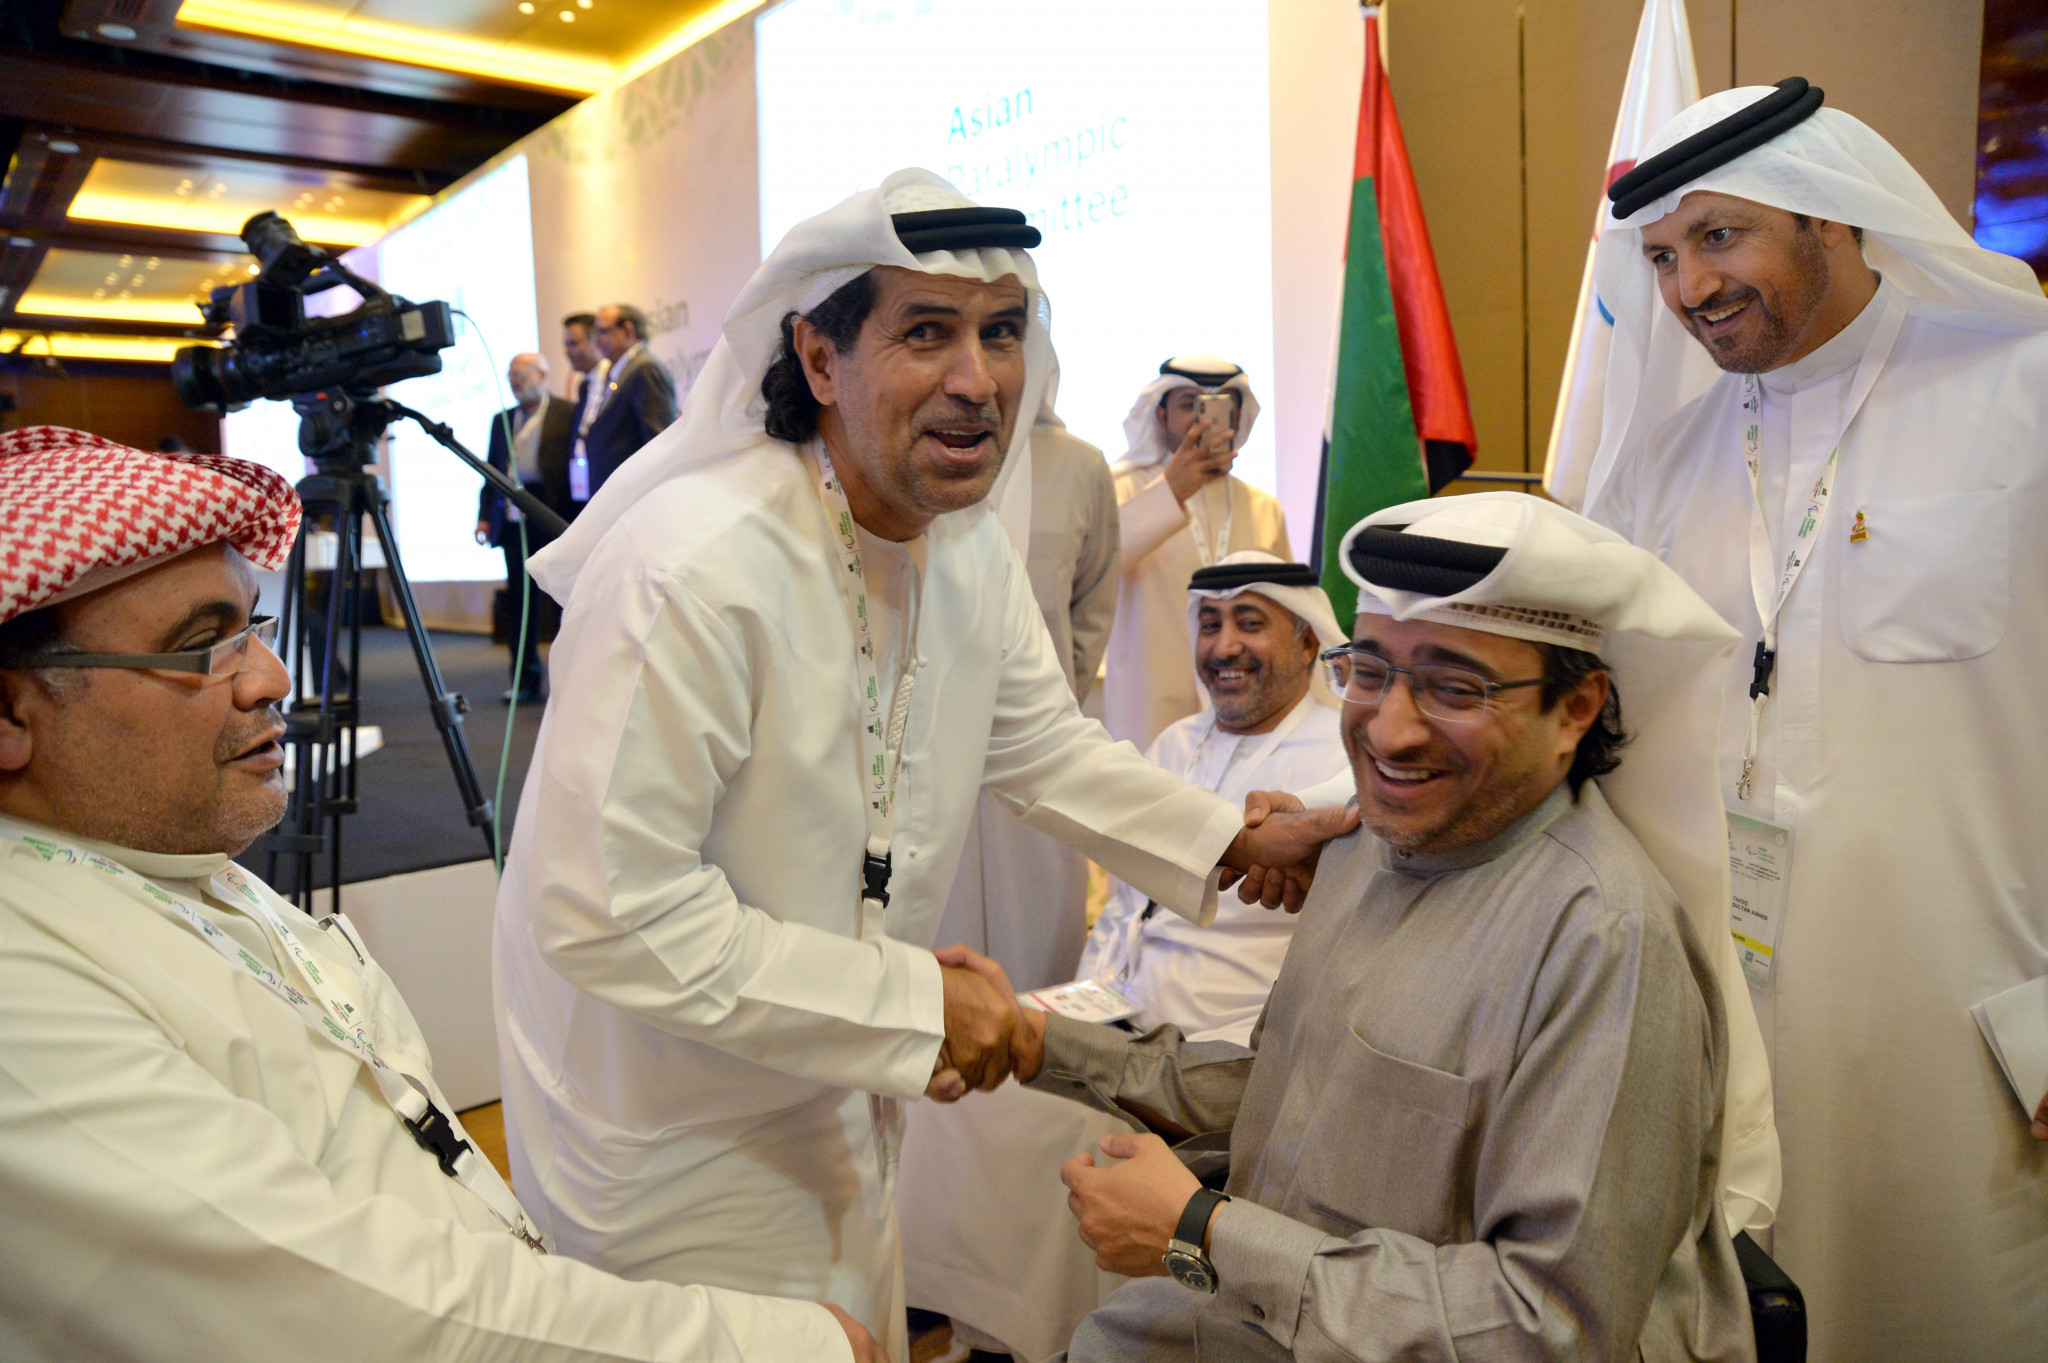 Rashed unanimously re-elected as APC President during General Assembly in Dubai